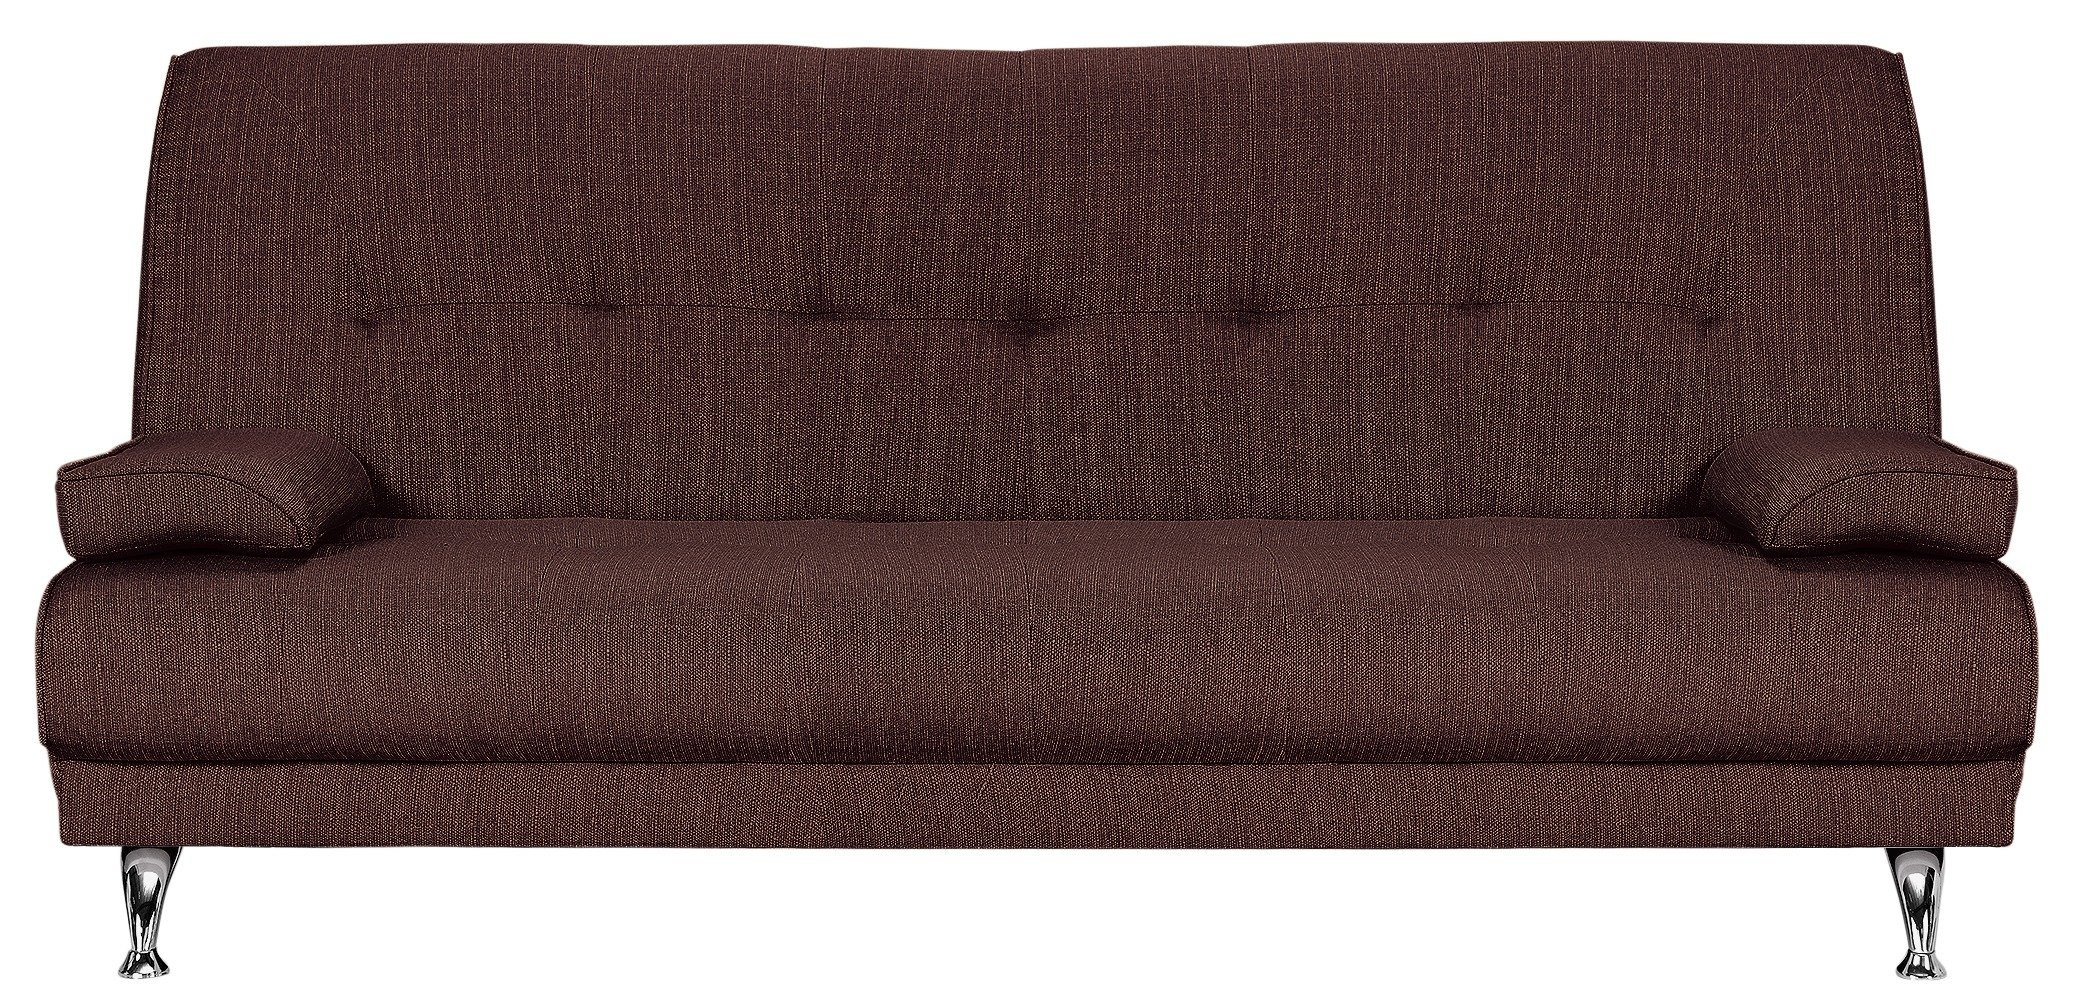 clic chaise longue uk with 6 7ctype 7cchair Beds 7c1 on Sofa Bed Argos Co Uk likewise Friheten Three Seat Sofa Bed Skiftebo Dark Grey Art 10341150 together with Beddinge Sofa Bed additionally F 1107903 Del8004399500358 together with Sofa Bed Uk.